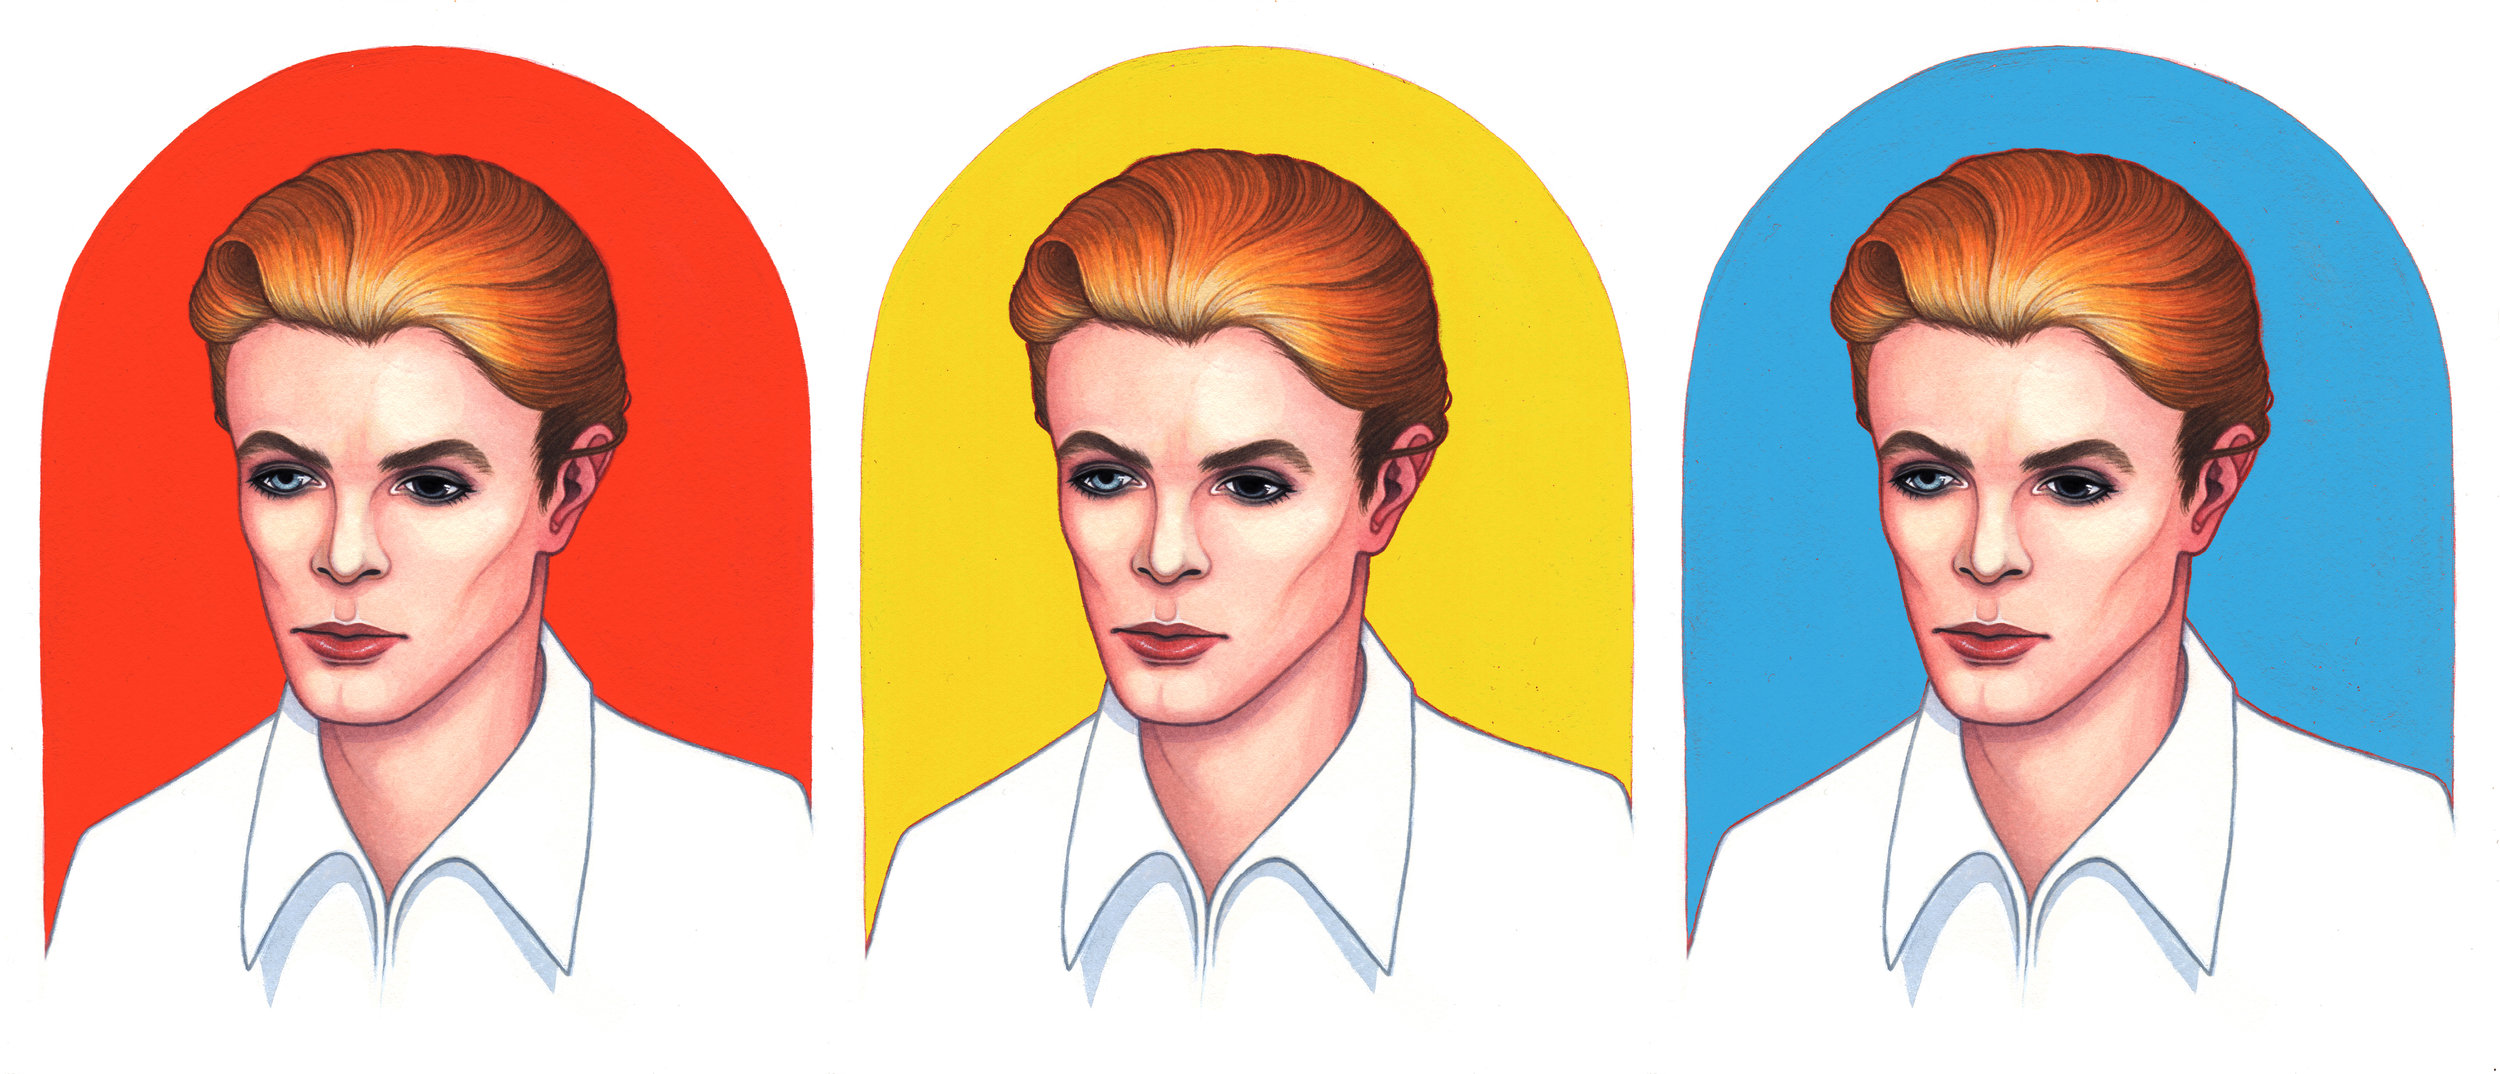 David Bowie rainbow.jpg